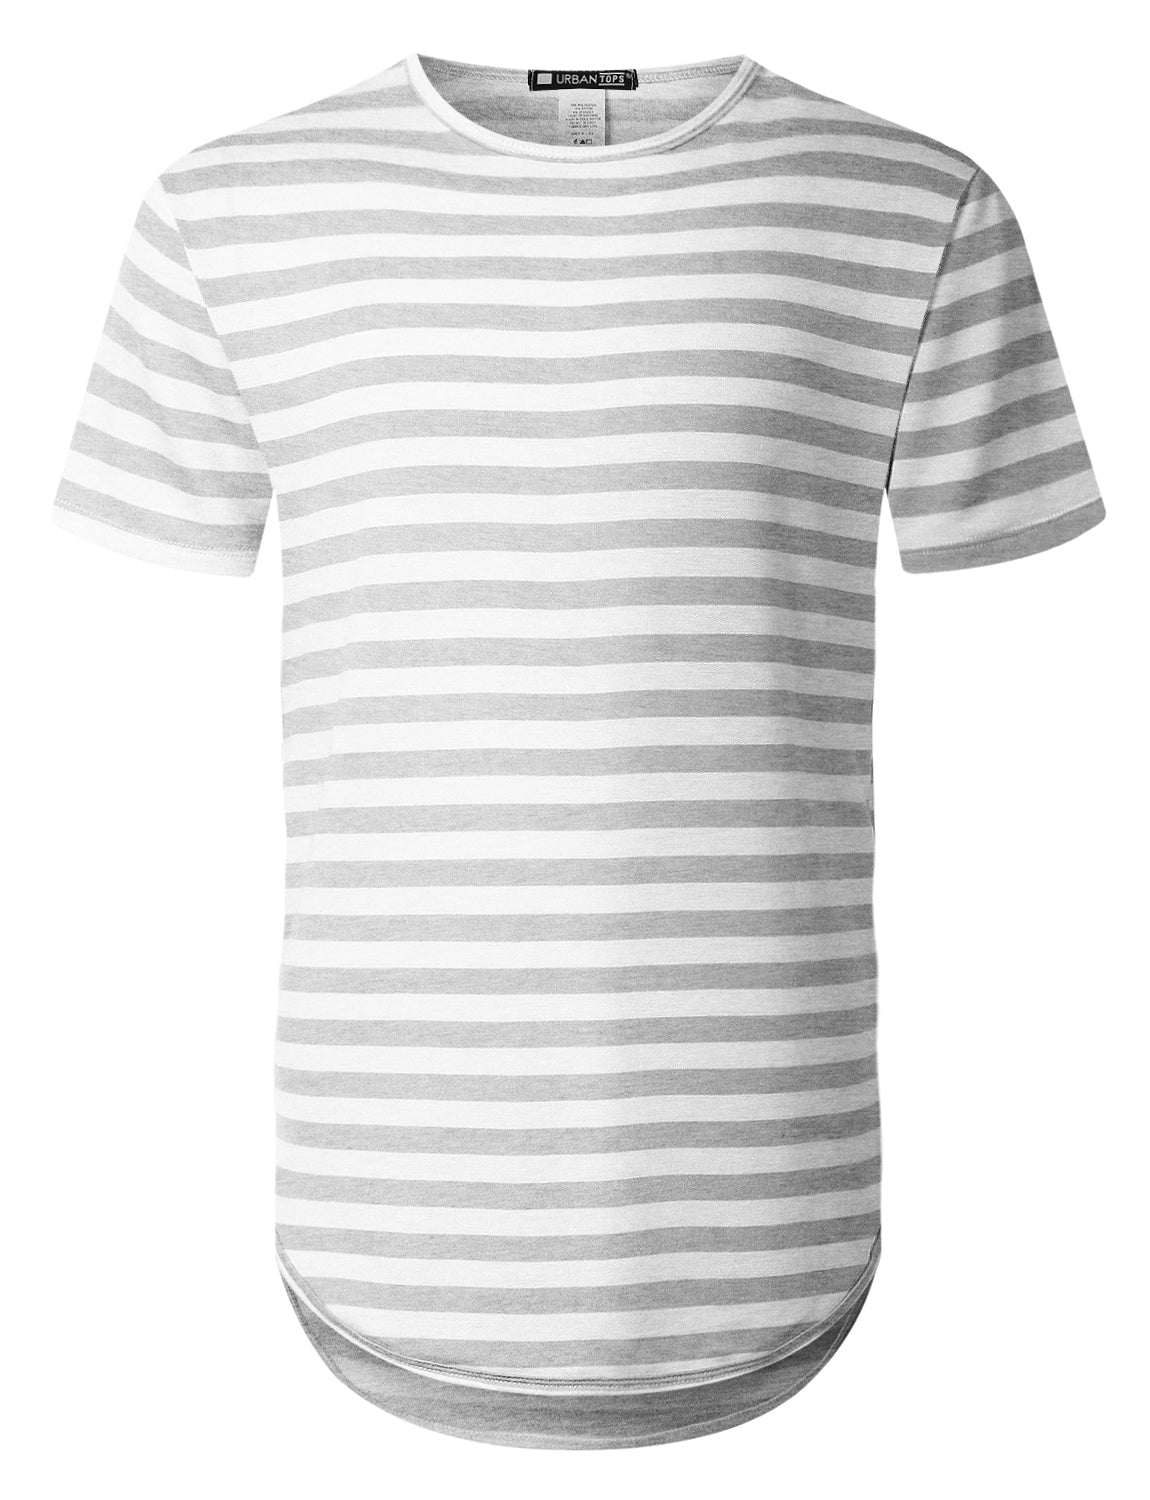 HGRAY Crewneck Striped Longline T-shirt - URBANCREWS